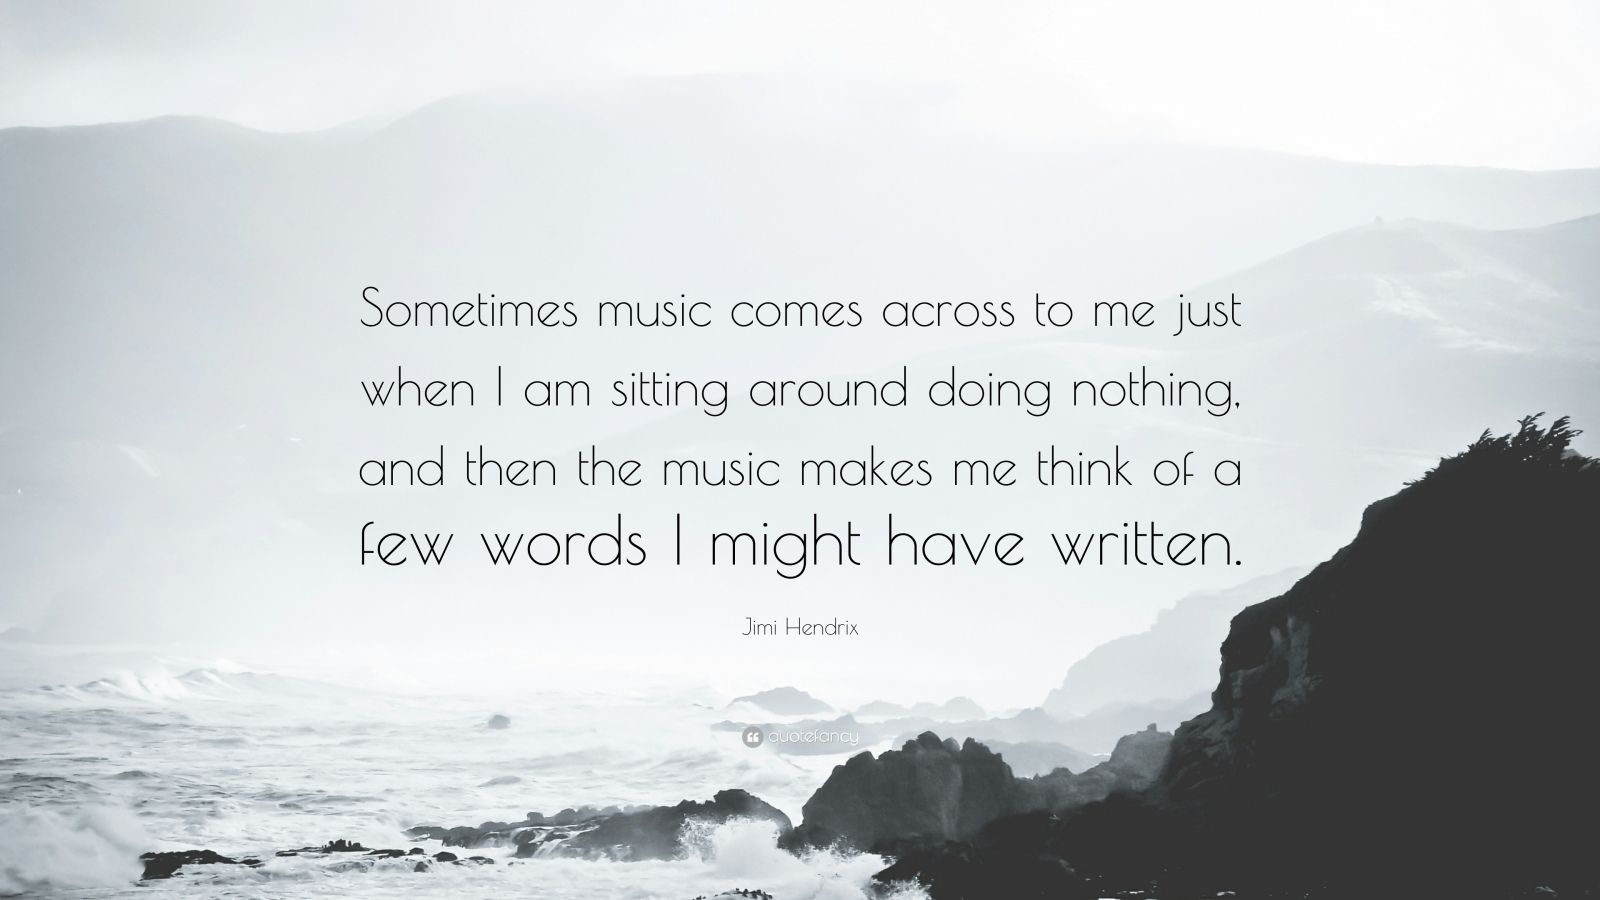 """Jimi Hendrix Quote: """"Sometimes music comes across to me just when I am sitting around doing nothing, and then the music makes me think of a few words I might have written."""""""